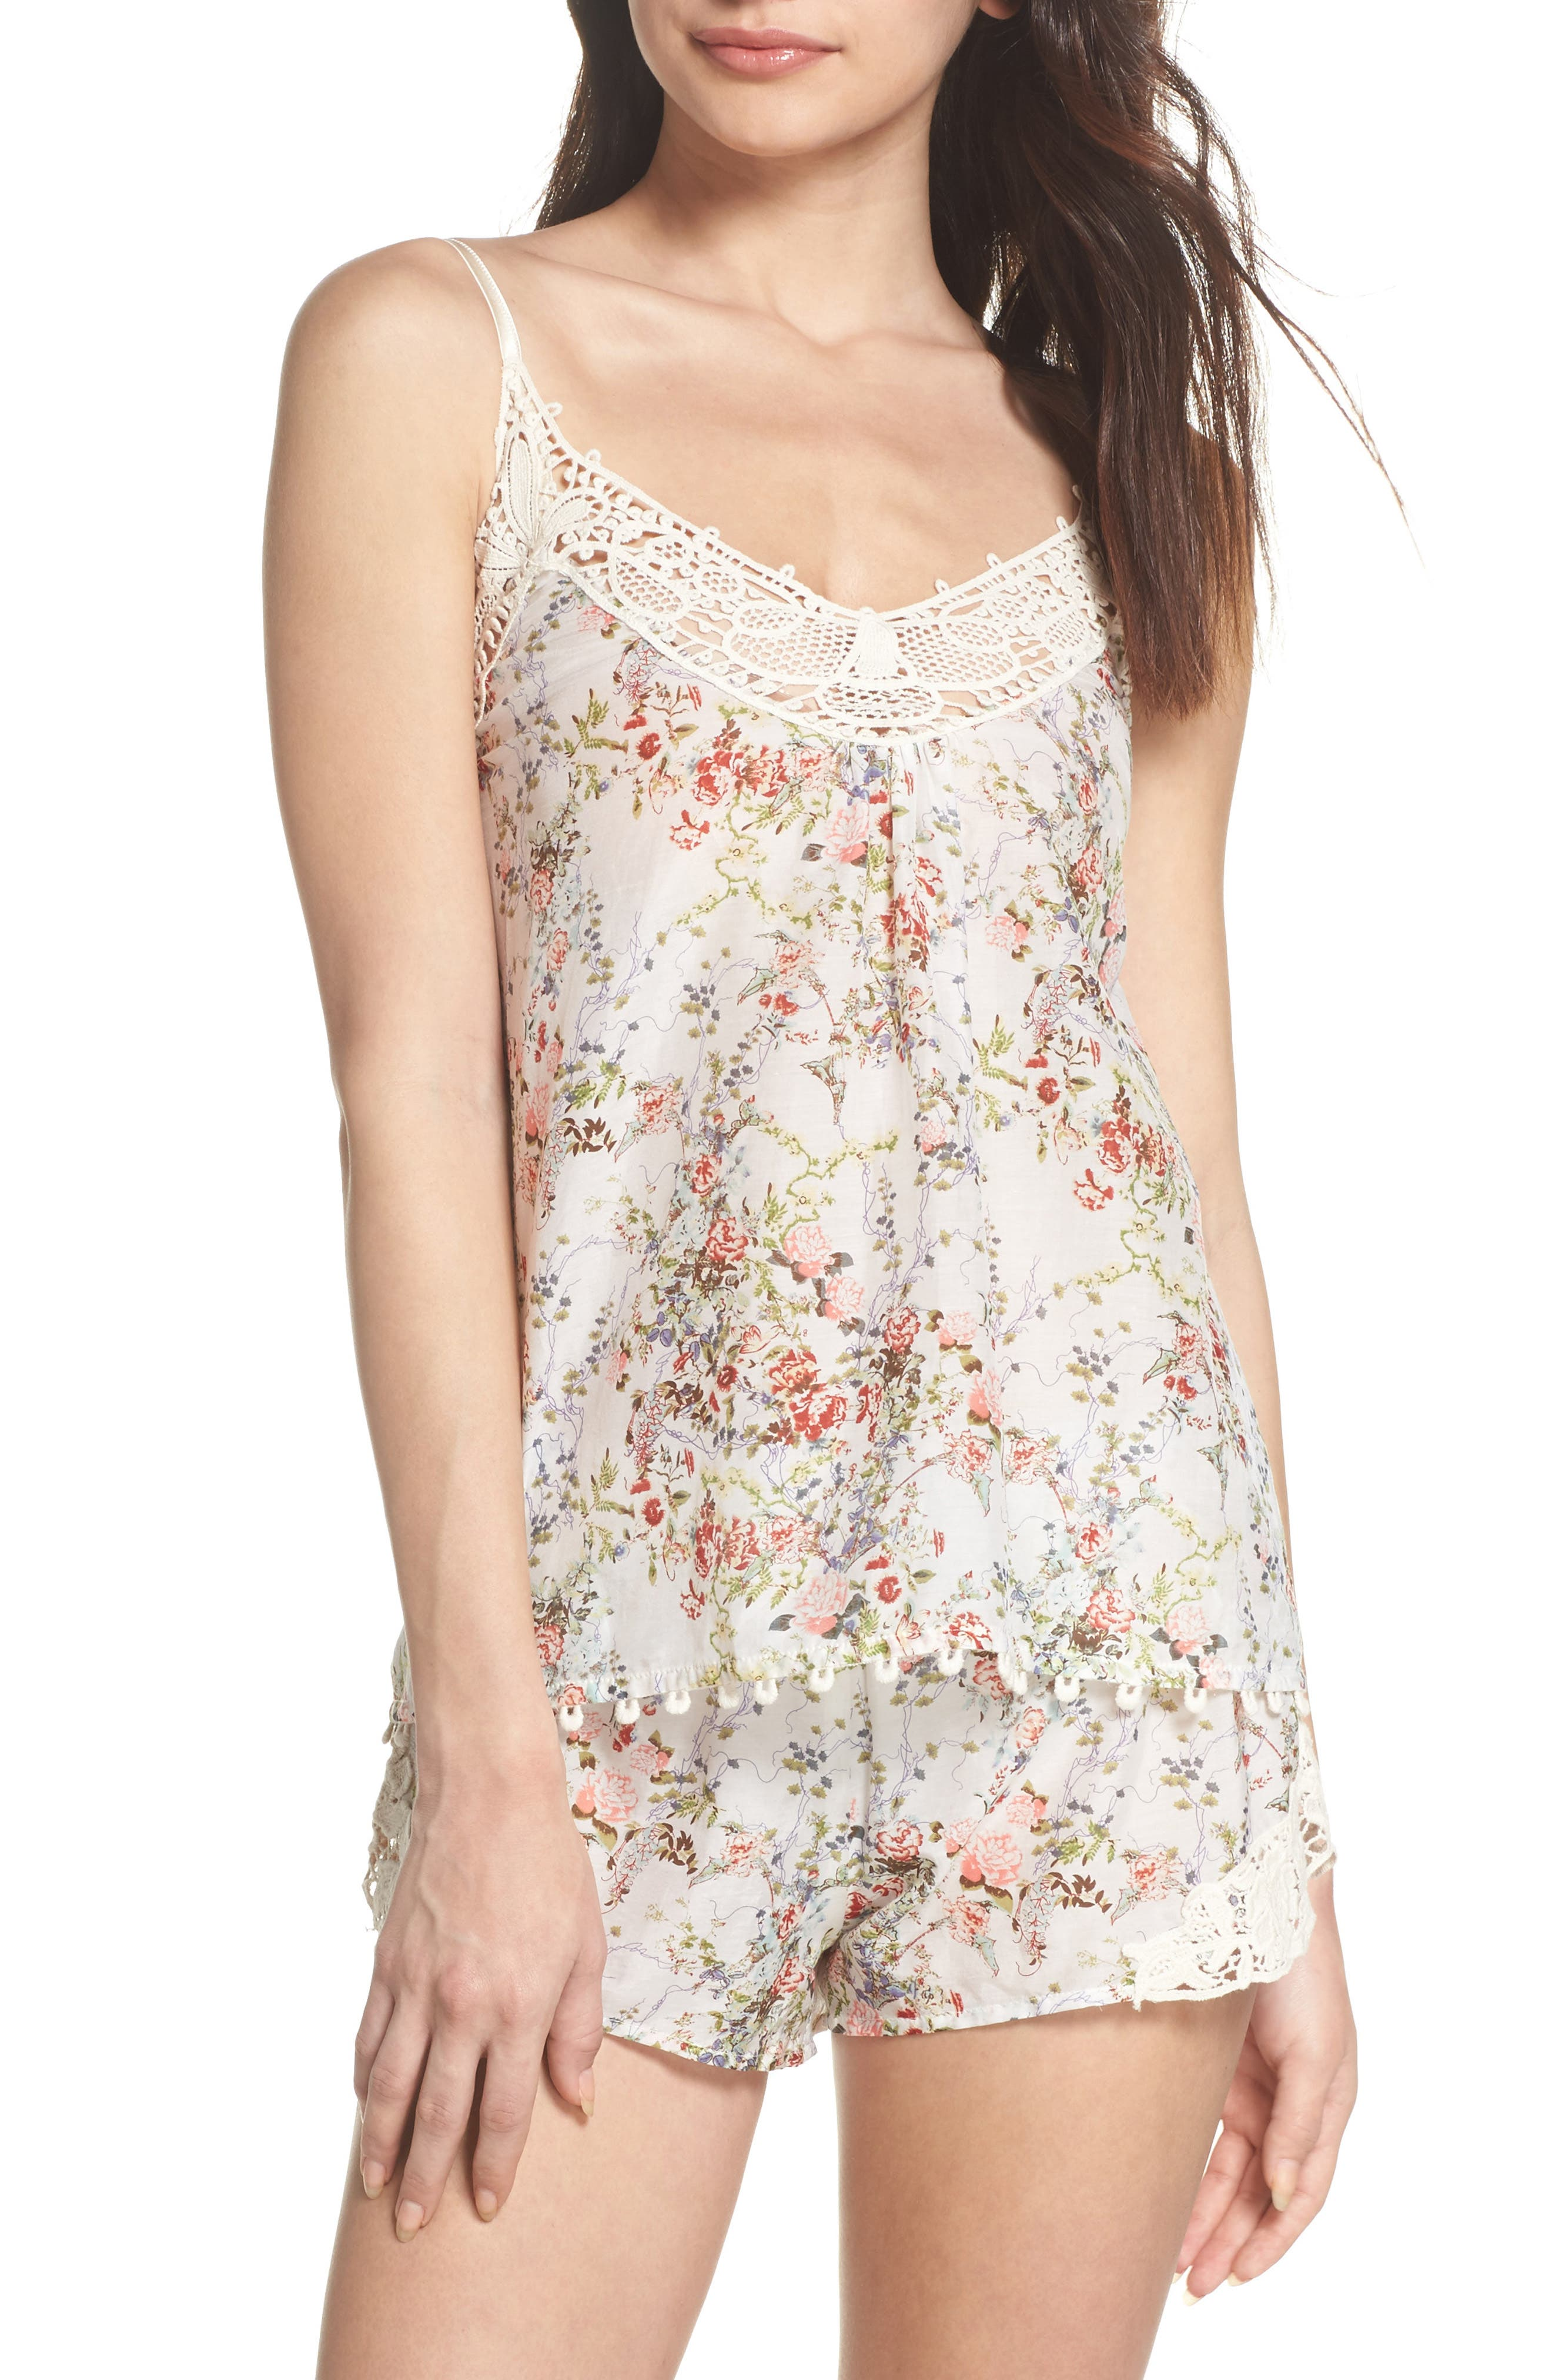 Yolly Camisole,                         Main,                         color, IVORY FLORAL